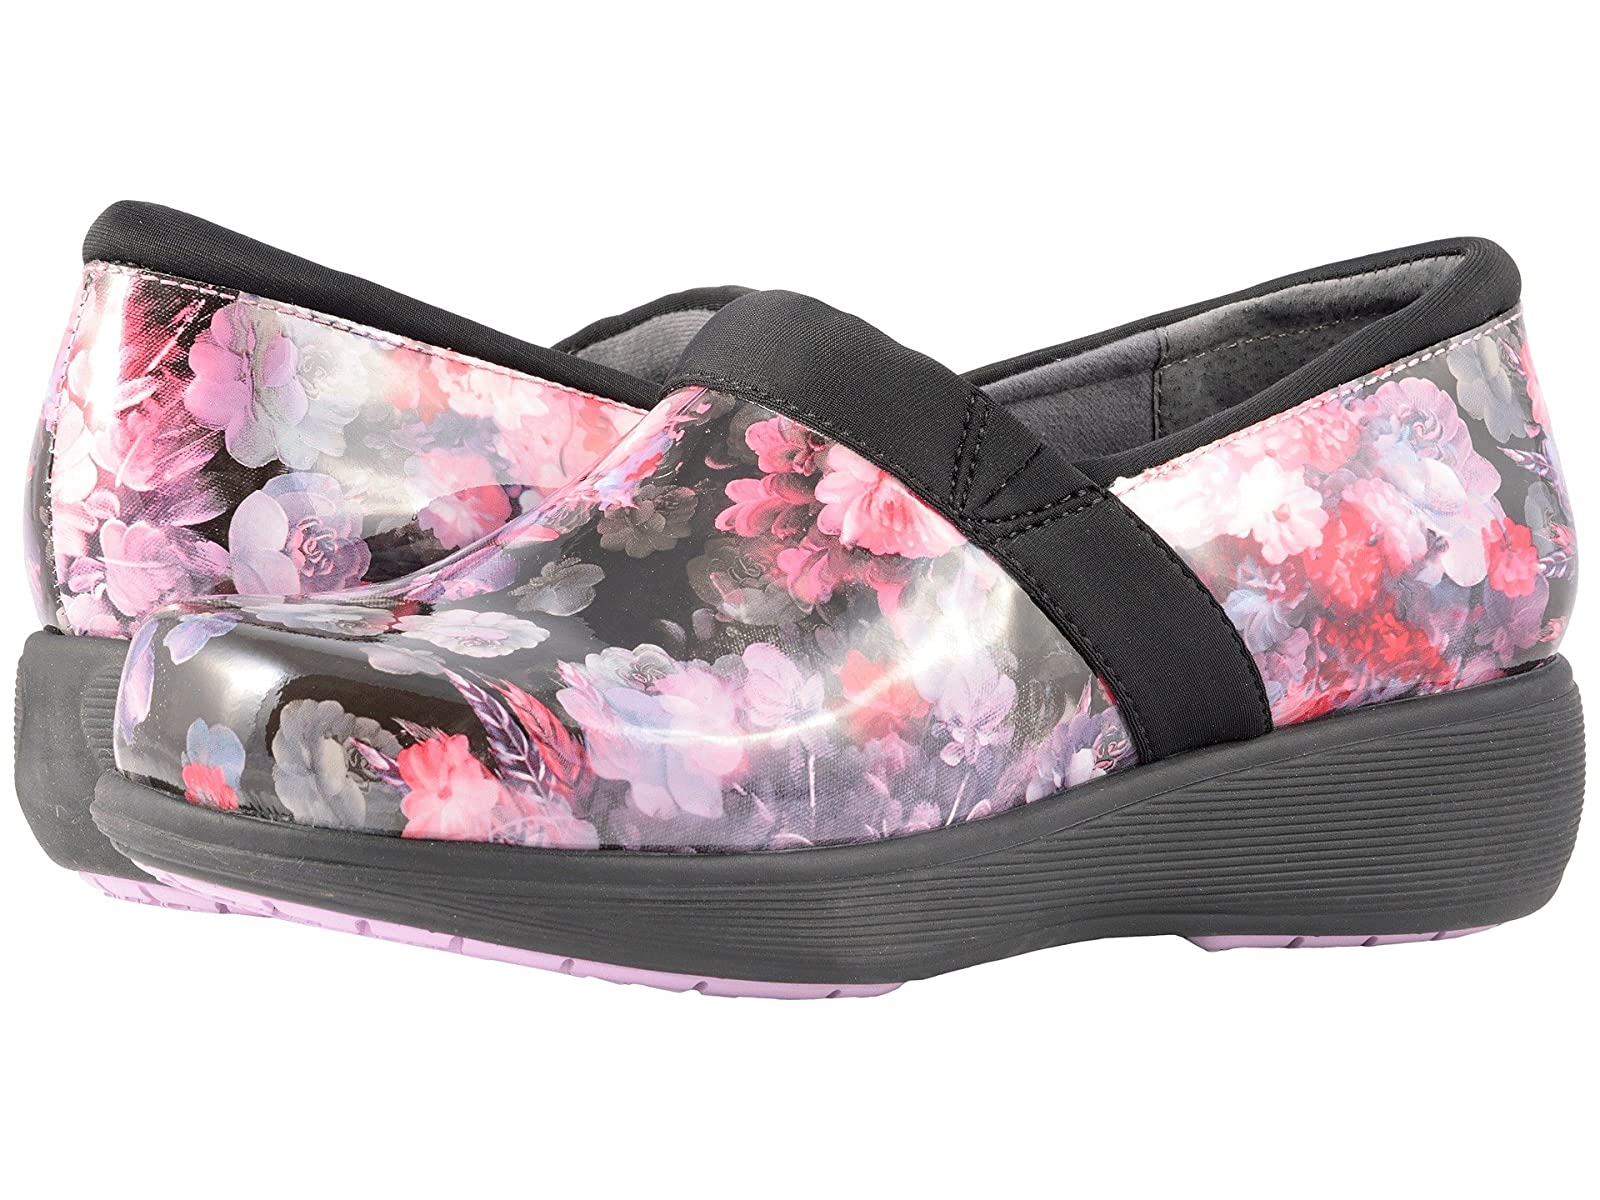 SoftWalk Grey's Anatomy Meredith SportAtmospheric grades have affordable shoes